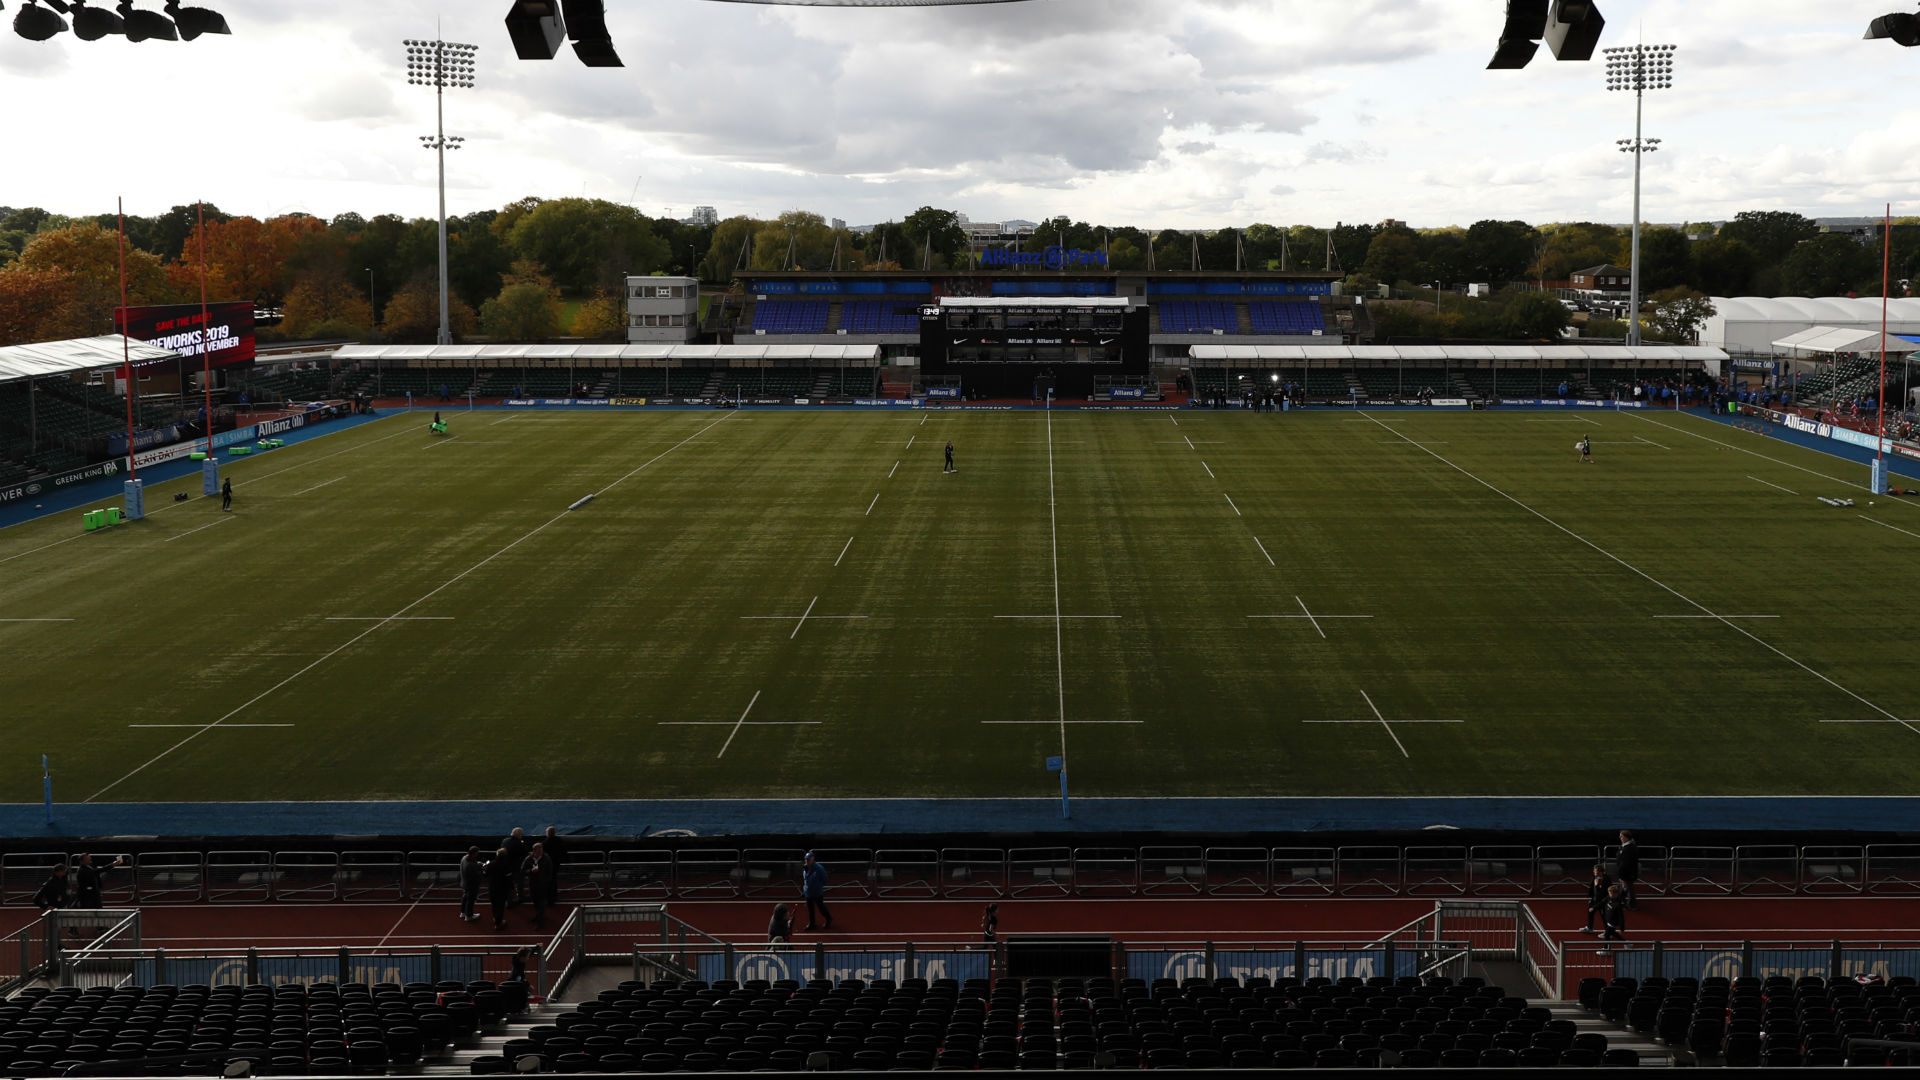 Saracens Release Statement Following Reports They Are Resigned To Relegation